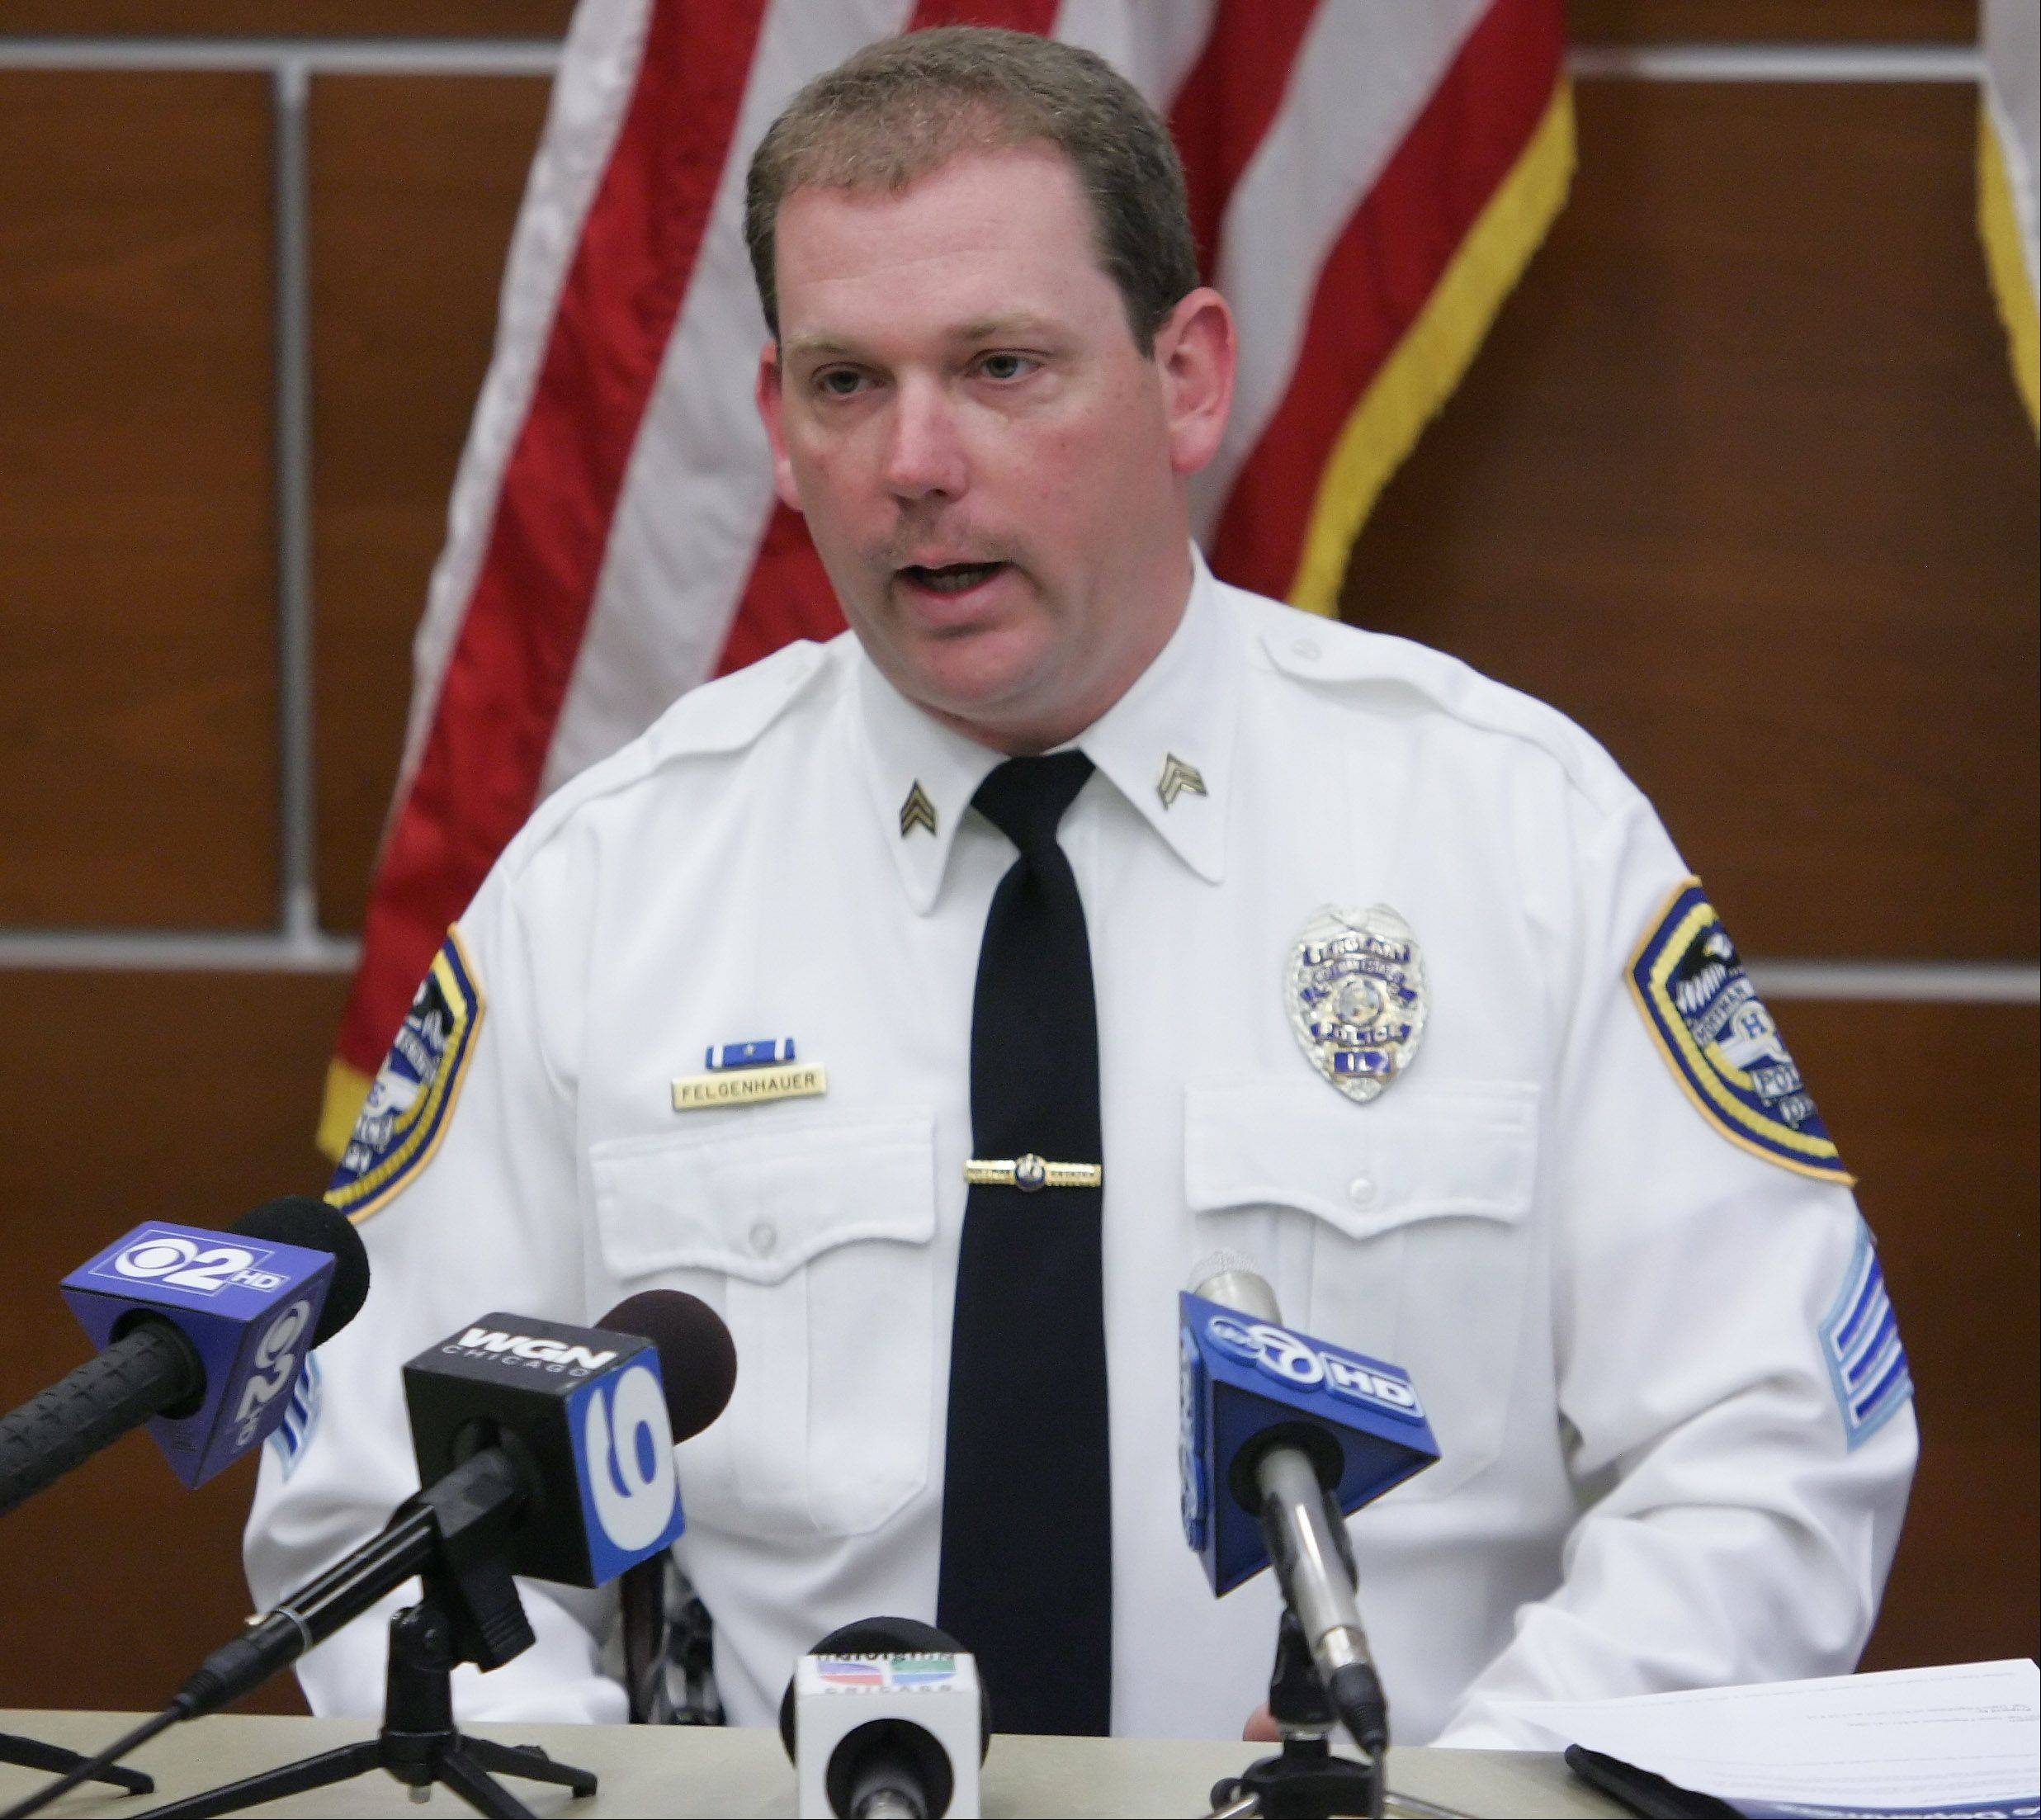 Hoffman Estates Sgt. Darin Felgenhauer on Sunday described the ongoing investigation of an 11-year-old boy found unconscious and not breathing Saturday afternoon near his Hoffman Estates home. The boy died later at St. Alexius Medical Center.